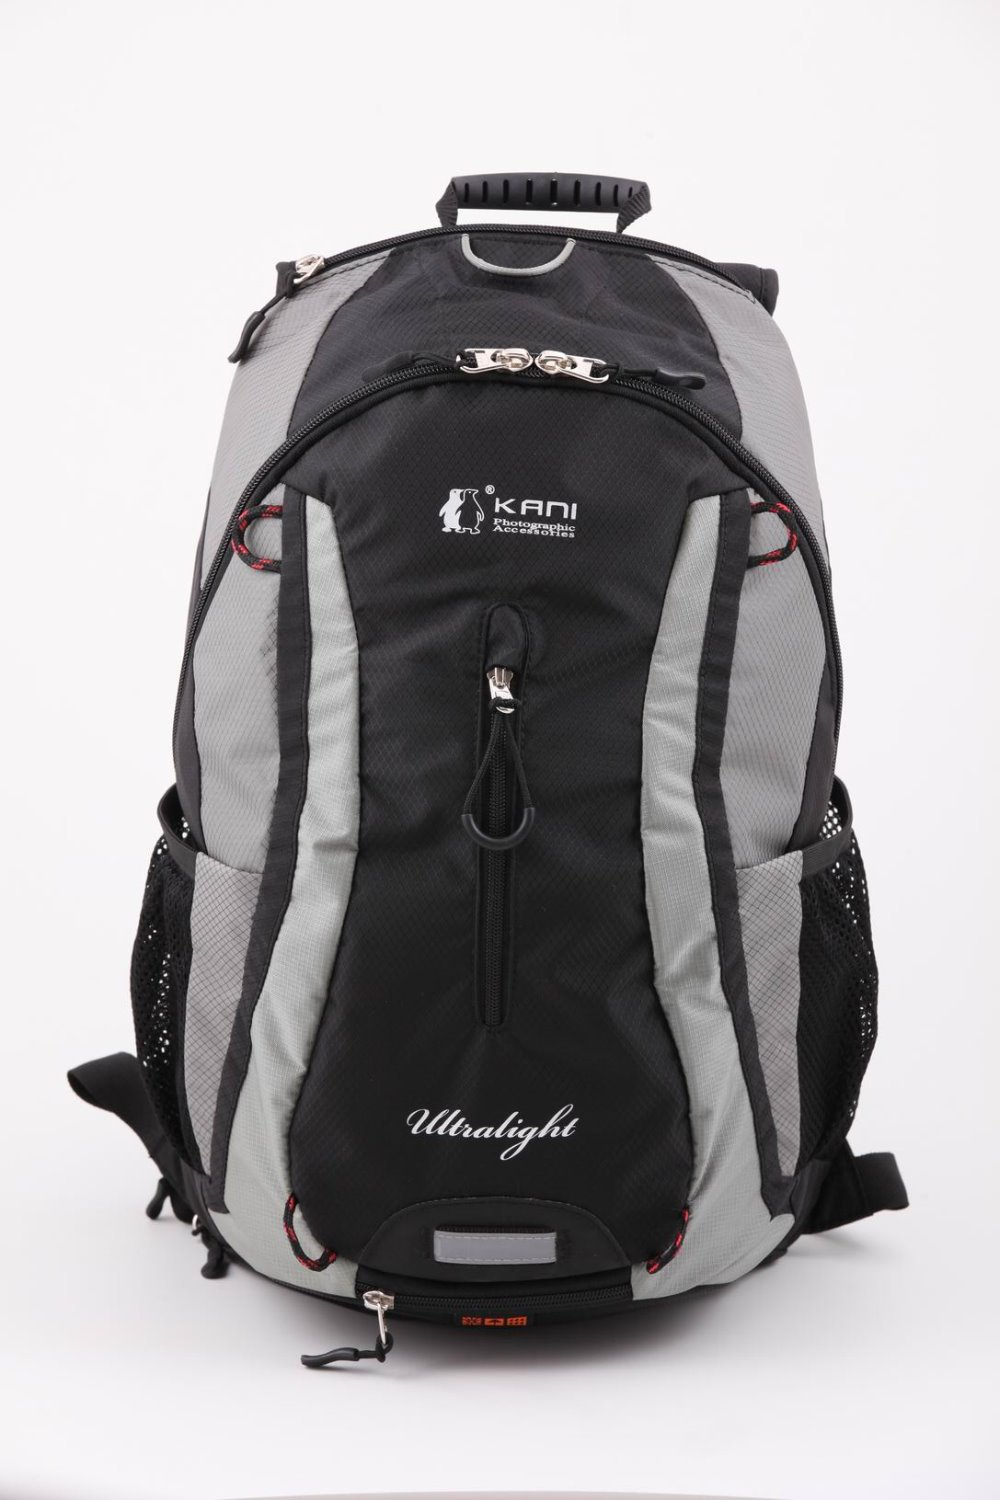 KANI BP-C100 CAMERA BAG DIGITAL SLR BACKPACK WITH WEATHER COVER FREE SHIPPING